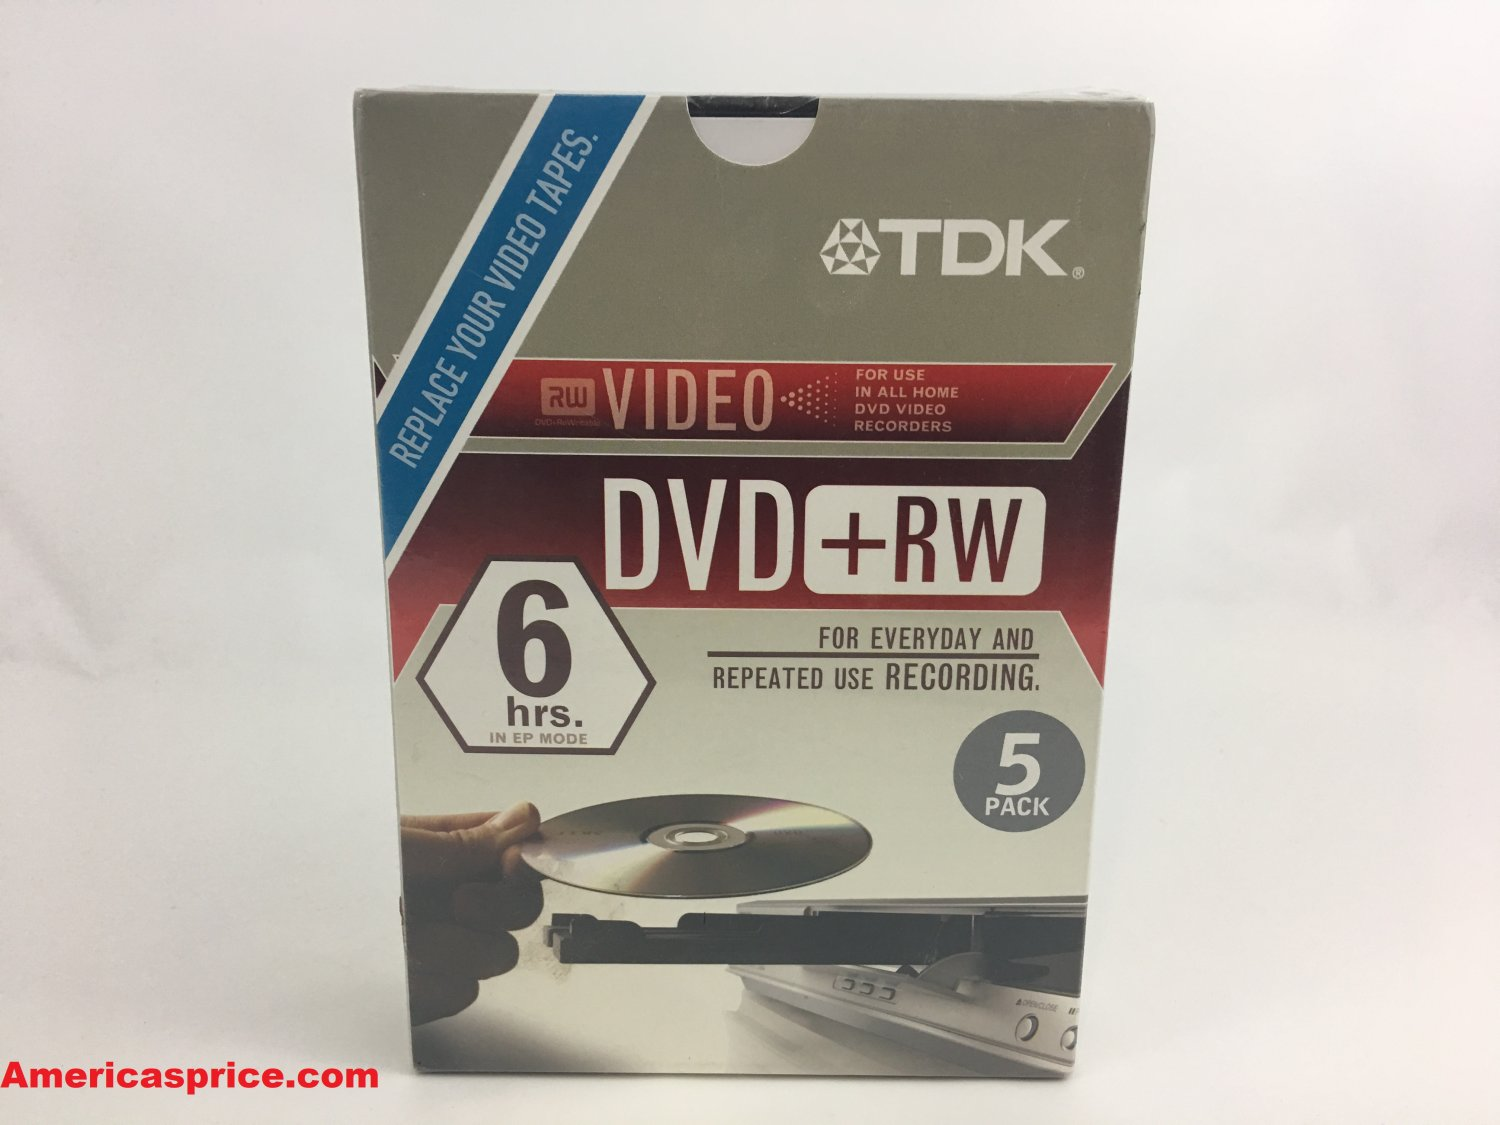 TDK DVD-RW 2X 4.7GB - GO 5 Pack Rewriteable DVD - 993390